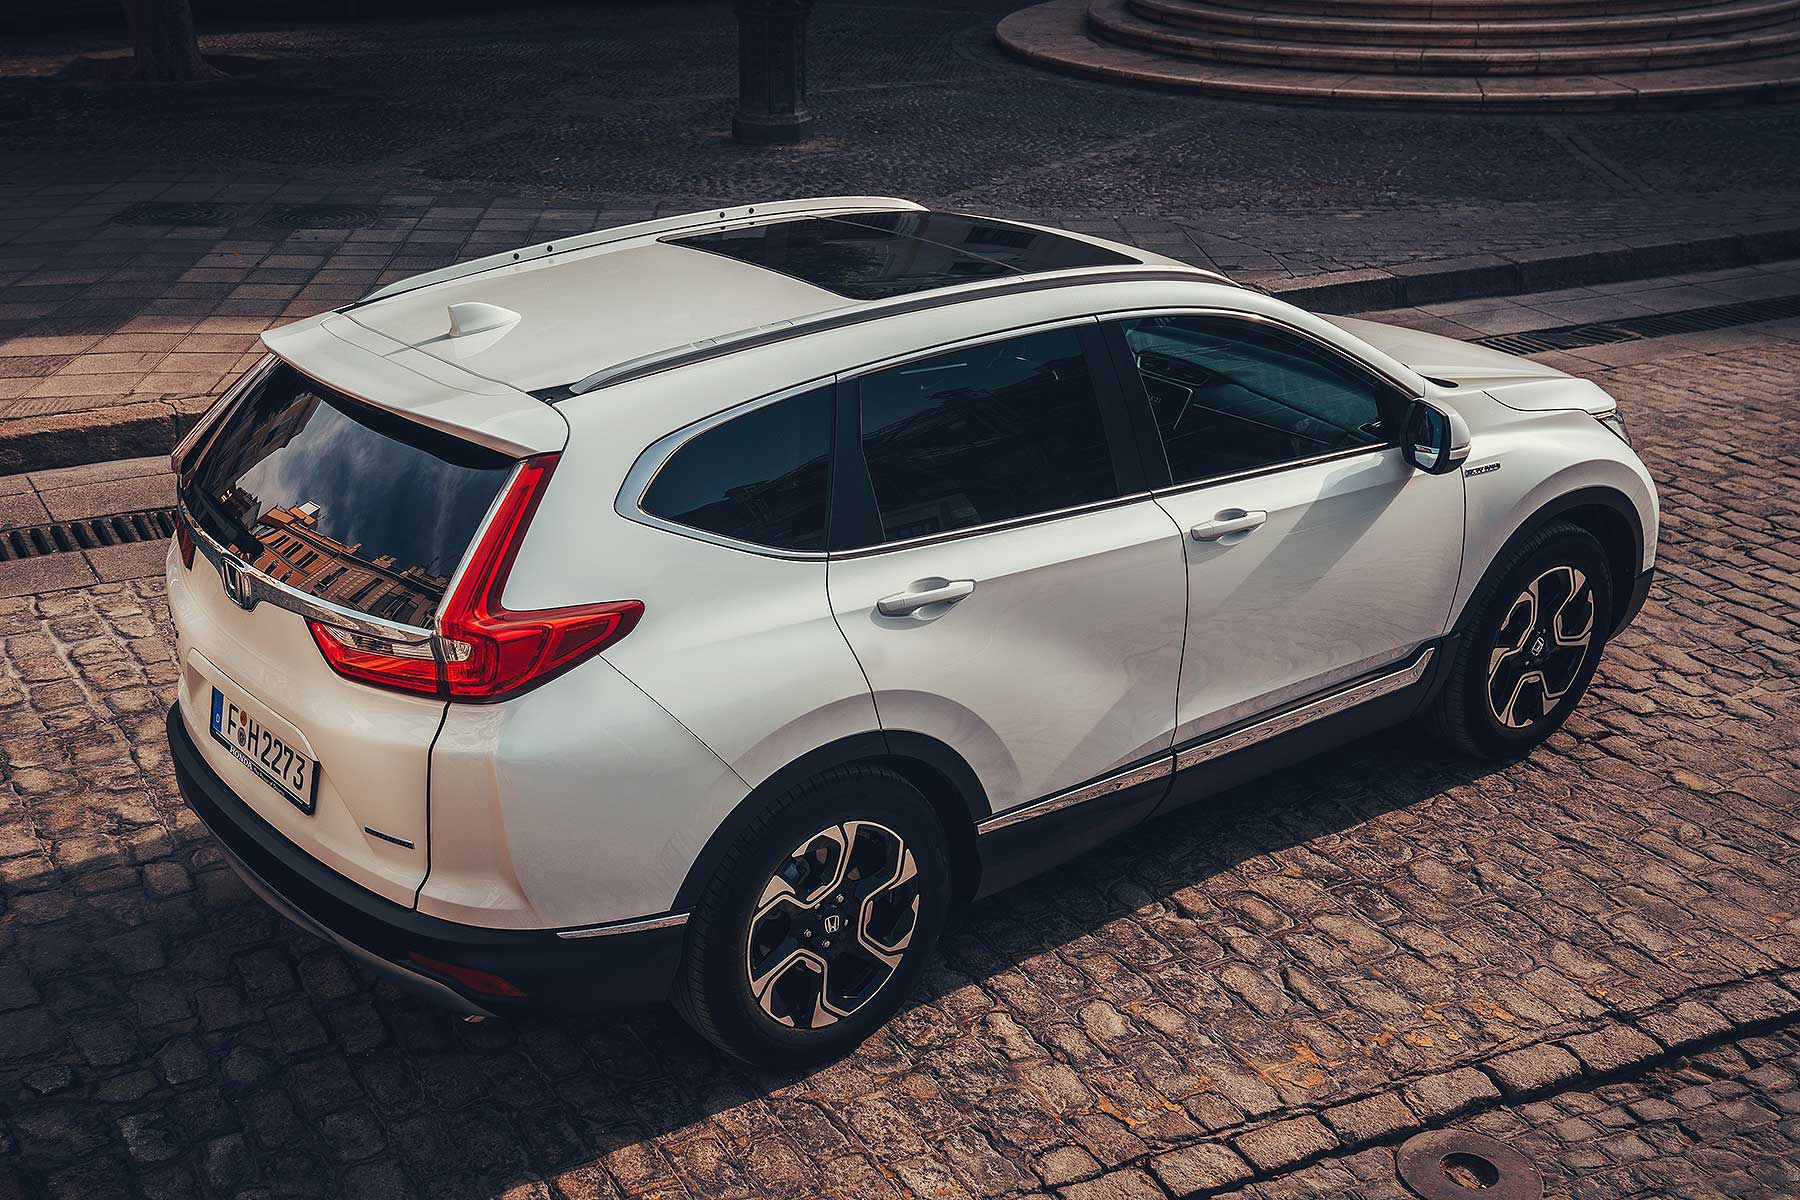 new 2019 honda cr v hybrid prices start from under 30 000